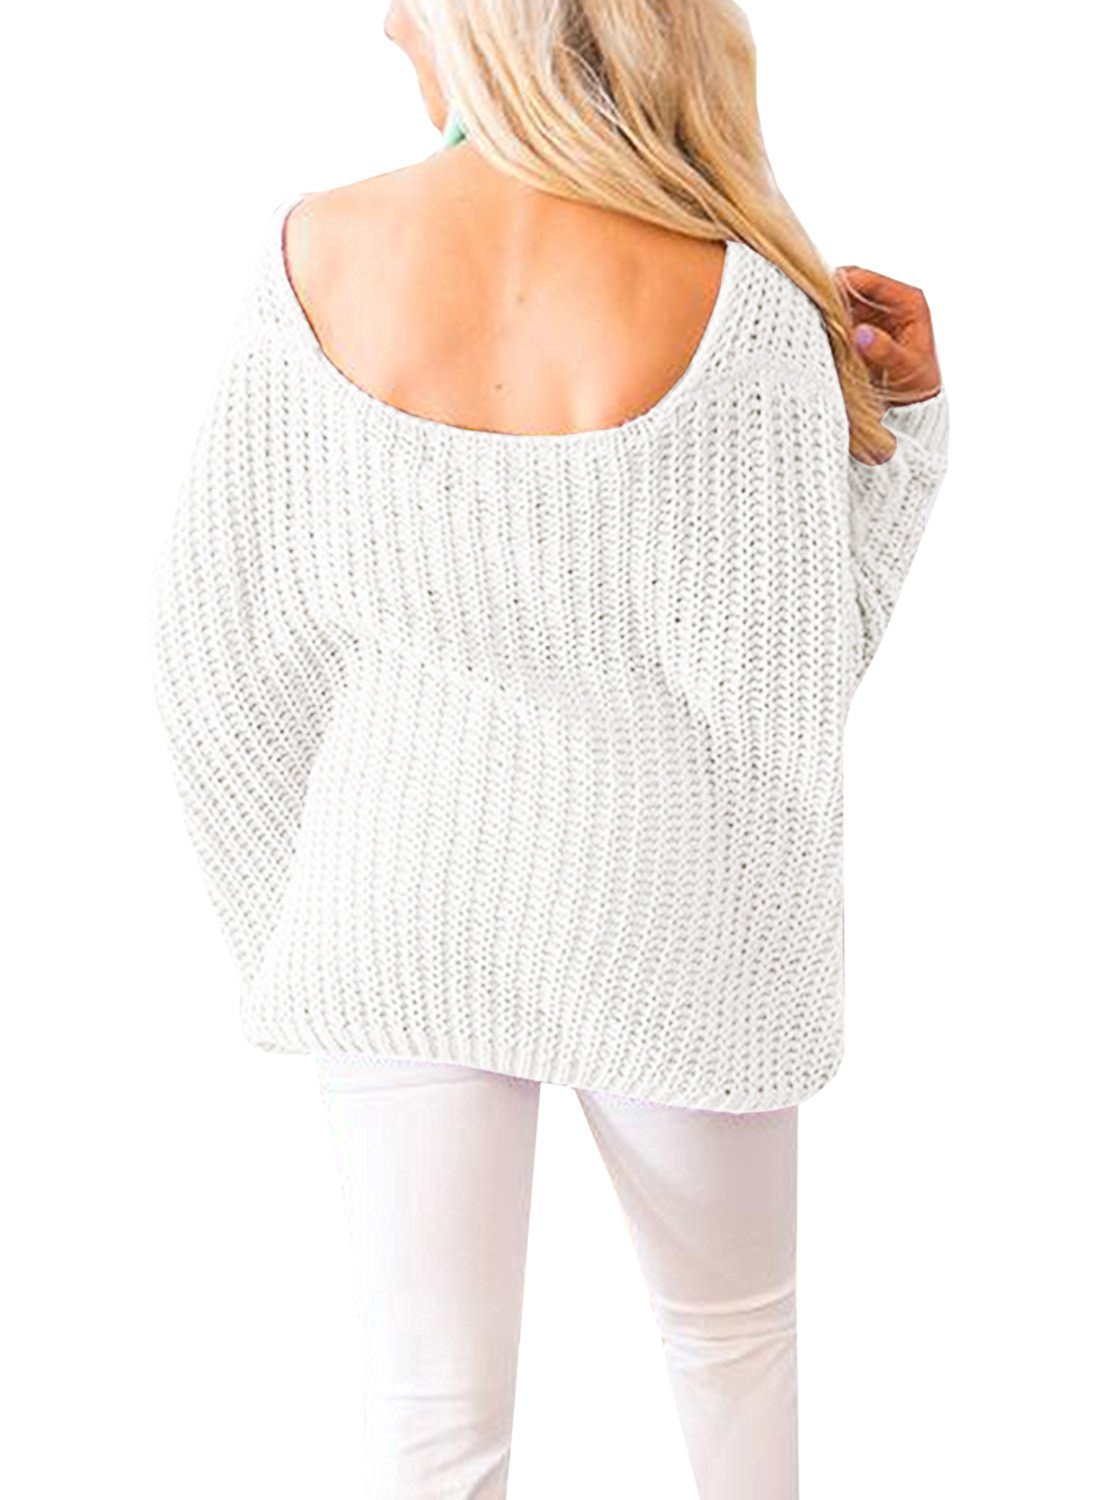 Huiyuzhi Women's Oversized Pullover Sweaters Off Shoulder V Neck Batwing Sleeve Loose Knit Chunky Sweatshirt Jumper Tops (M, White) by Huiyuzhi (Image #5)